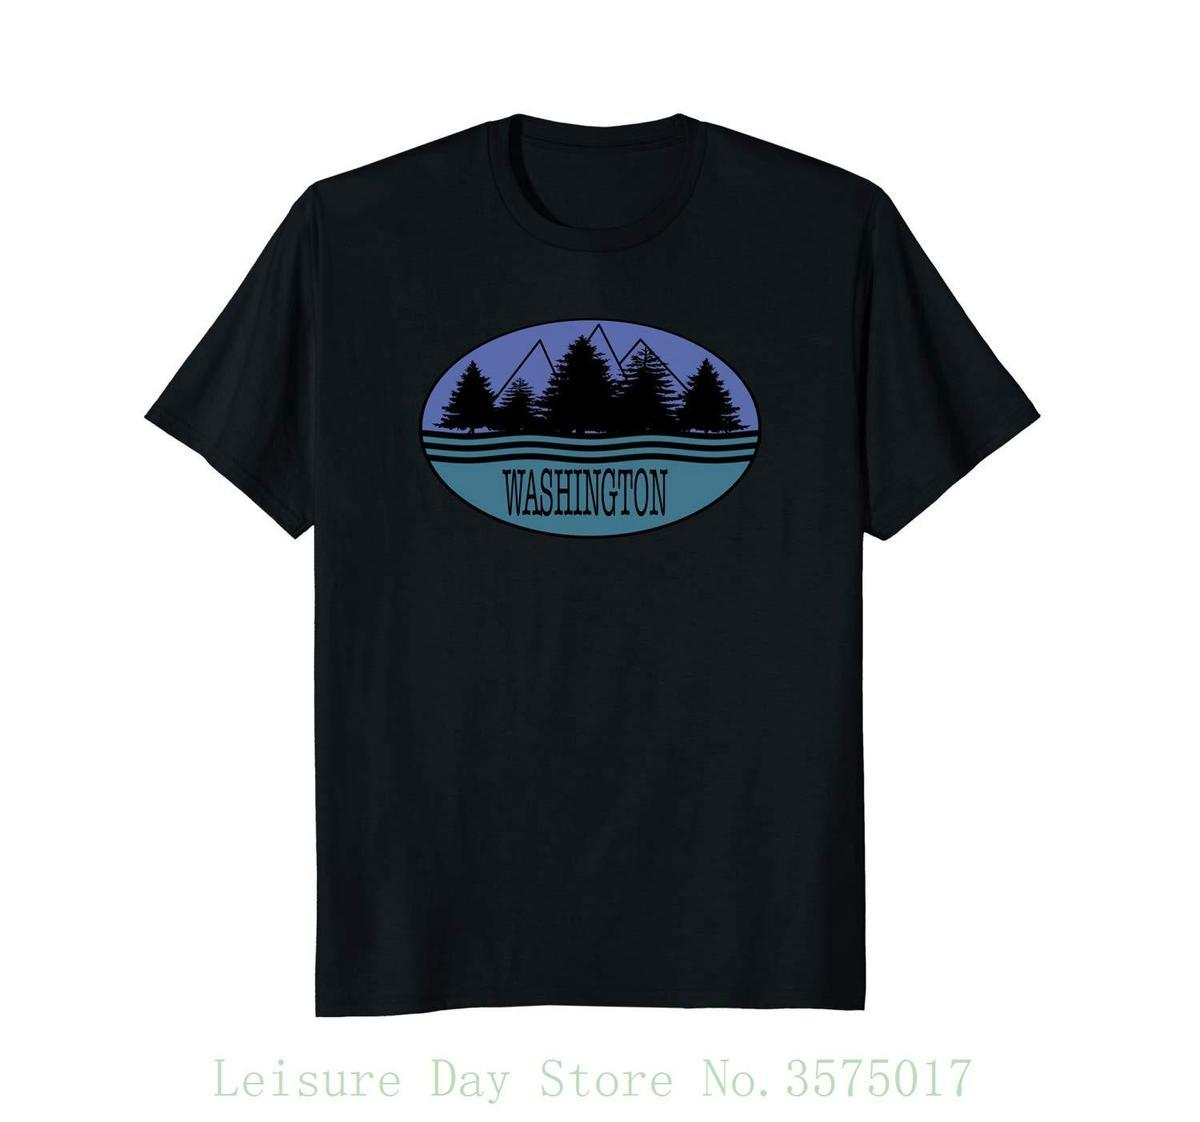 Bundesstaat Washington Souvenir T-Shirt Love Nature Outdoors 100% Baumwolle Kurzarm Sommer T-Shirt